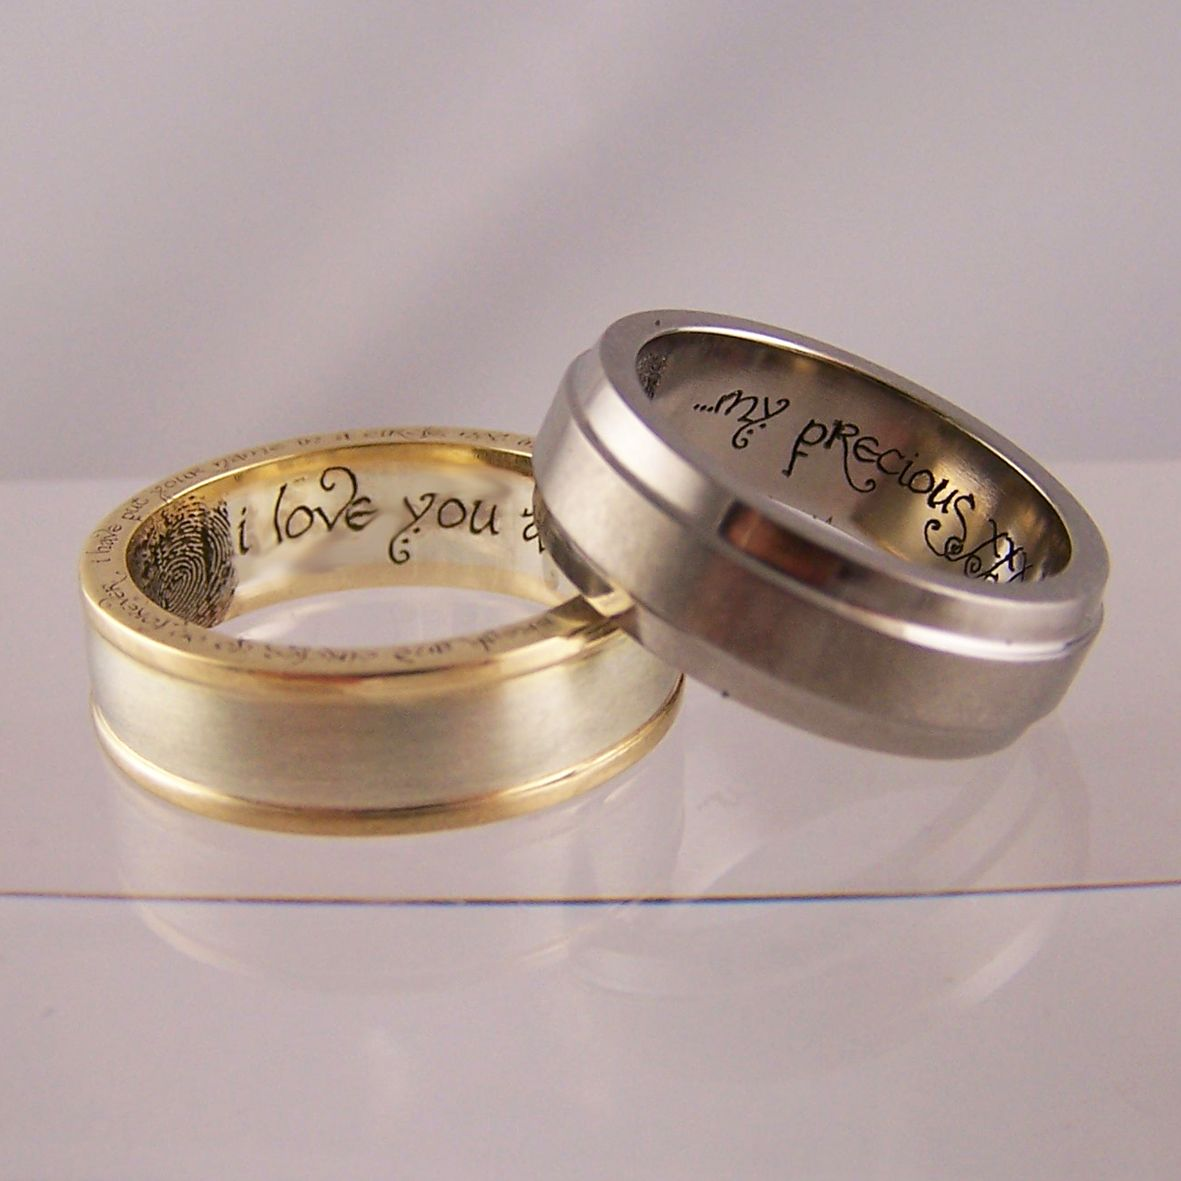 star wars wedding bands Lord of the Rings inspired wedding rings with Bilbo Baggins handwriting font couples fingerprints